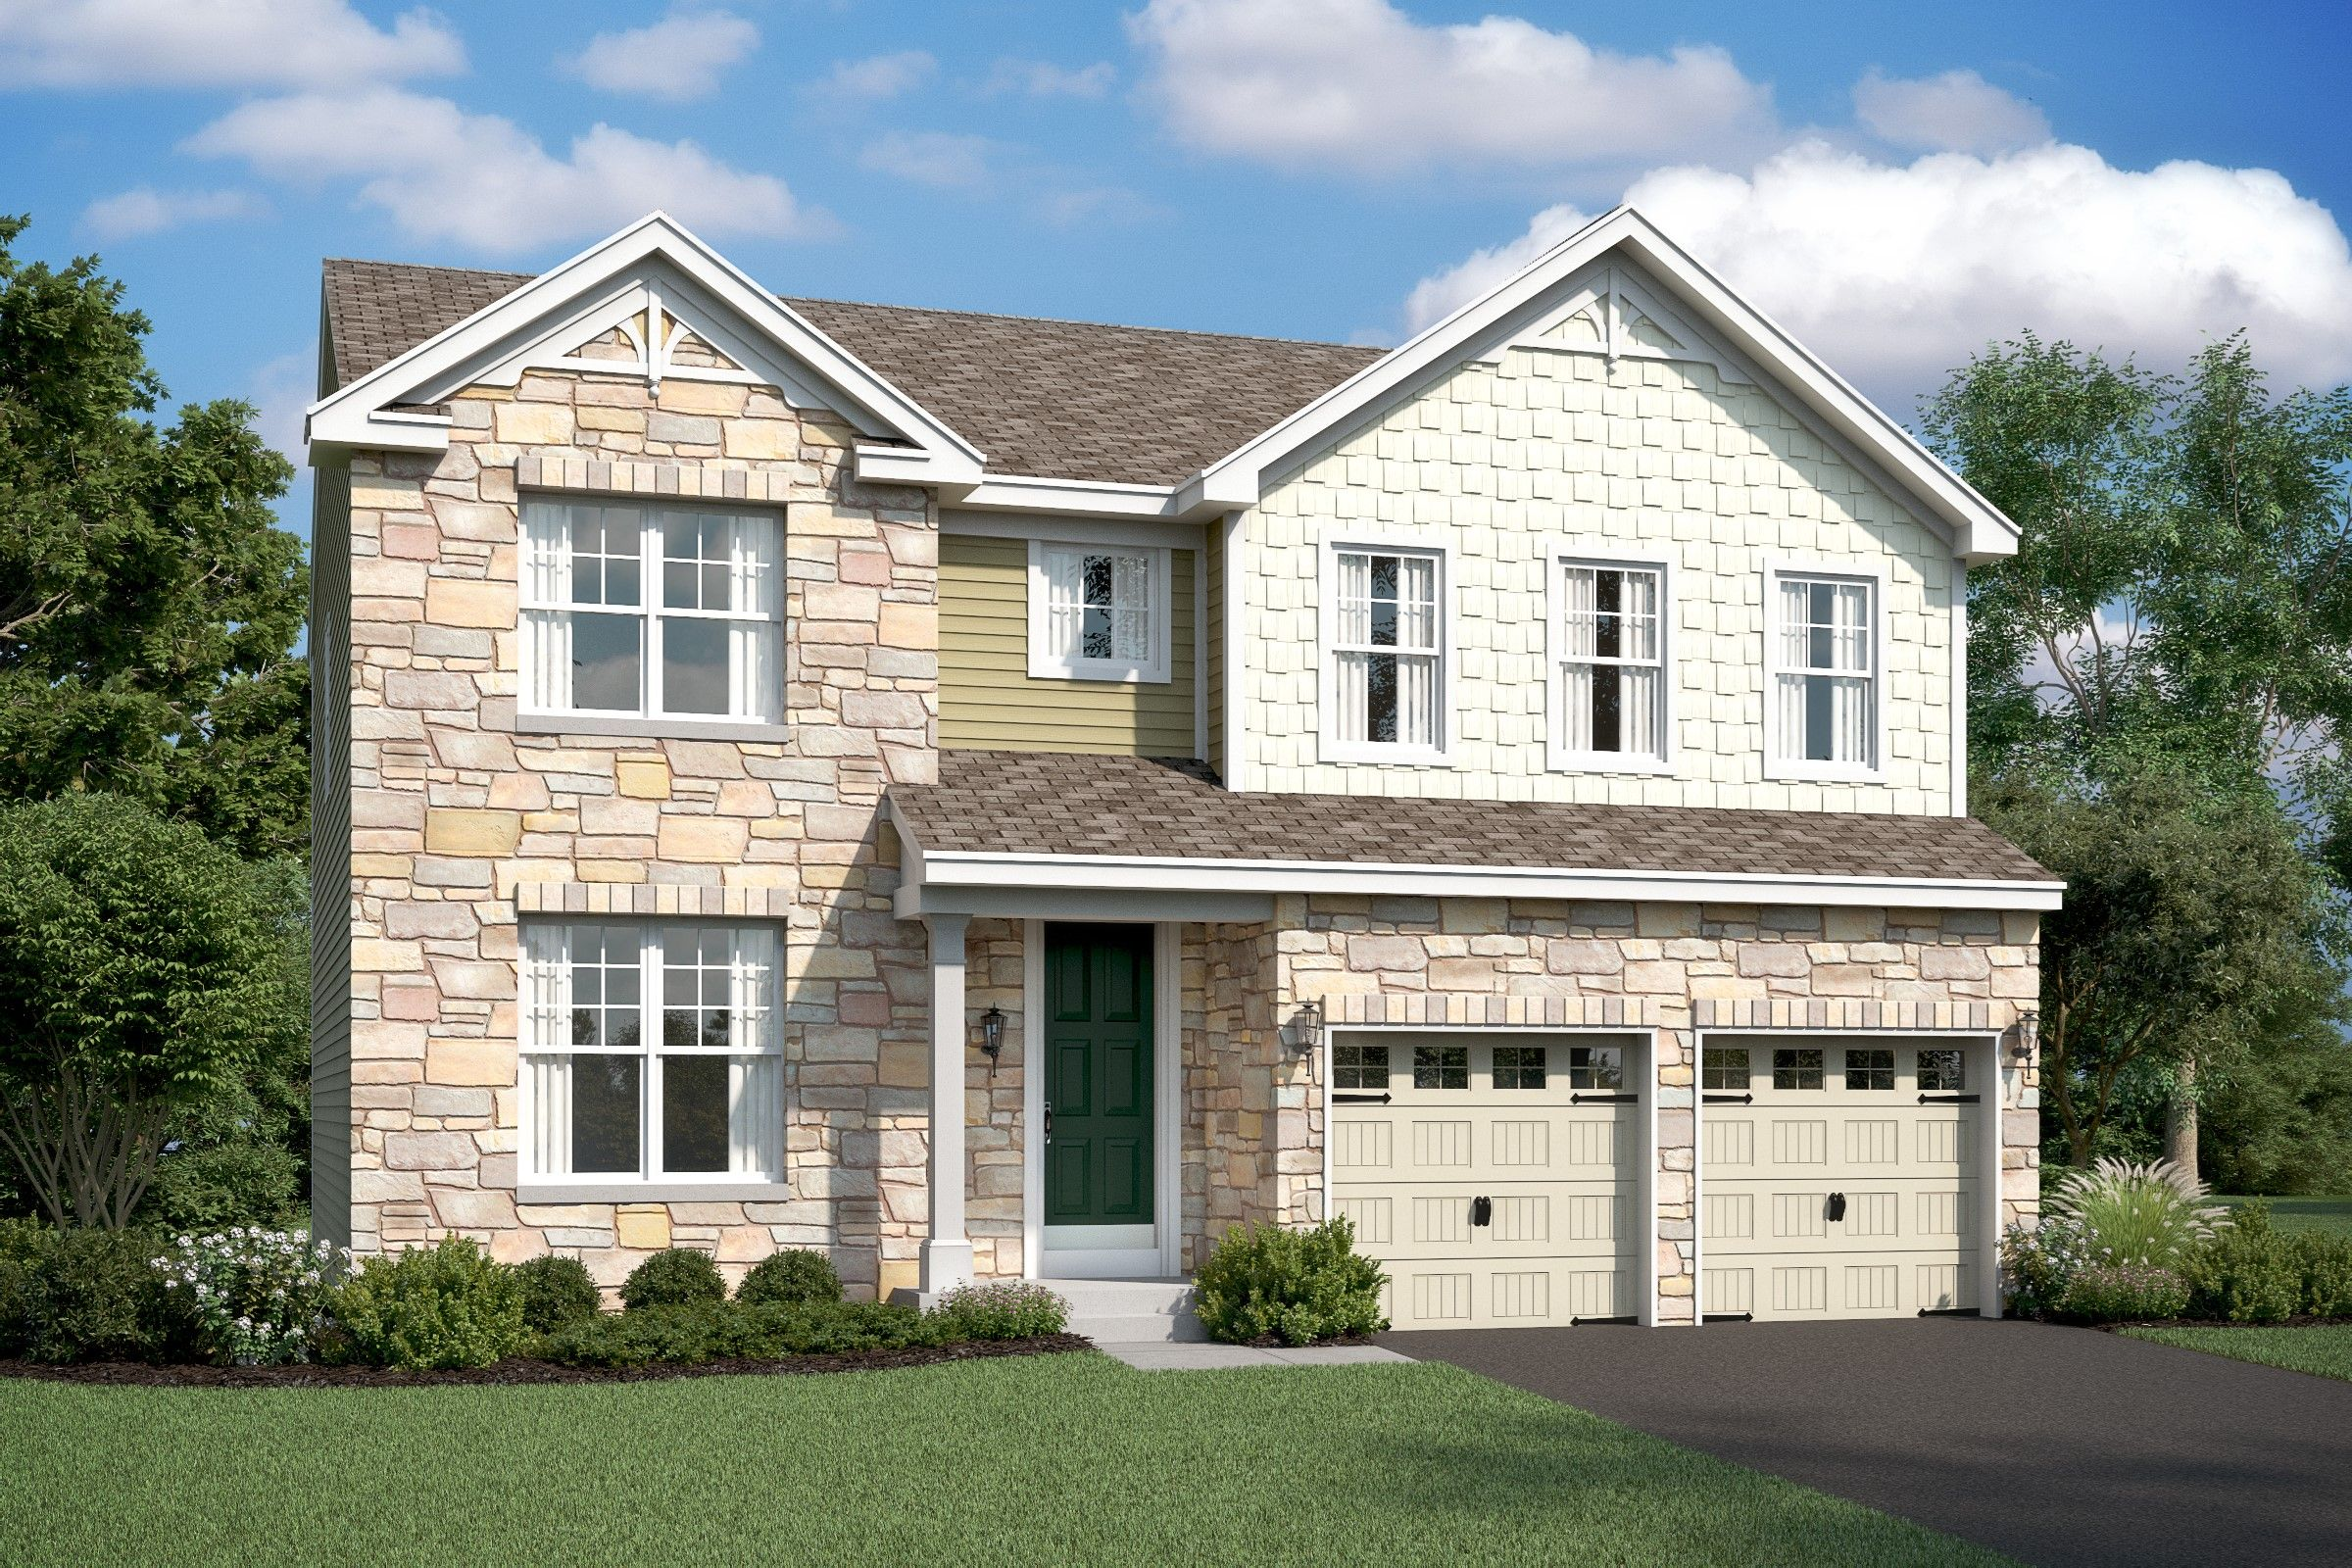 Single Family for Active at Eden Terrace - Hanover 110 Forest Avenue Catonsville, Maryland 21228 United States